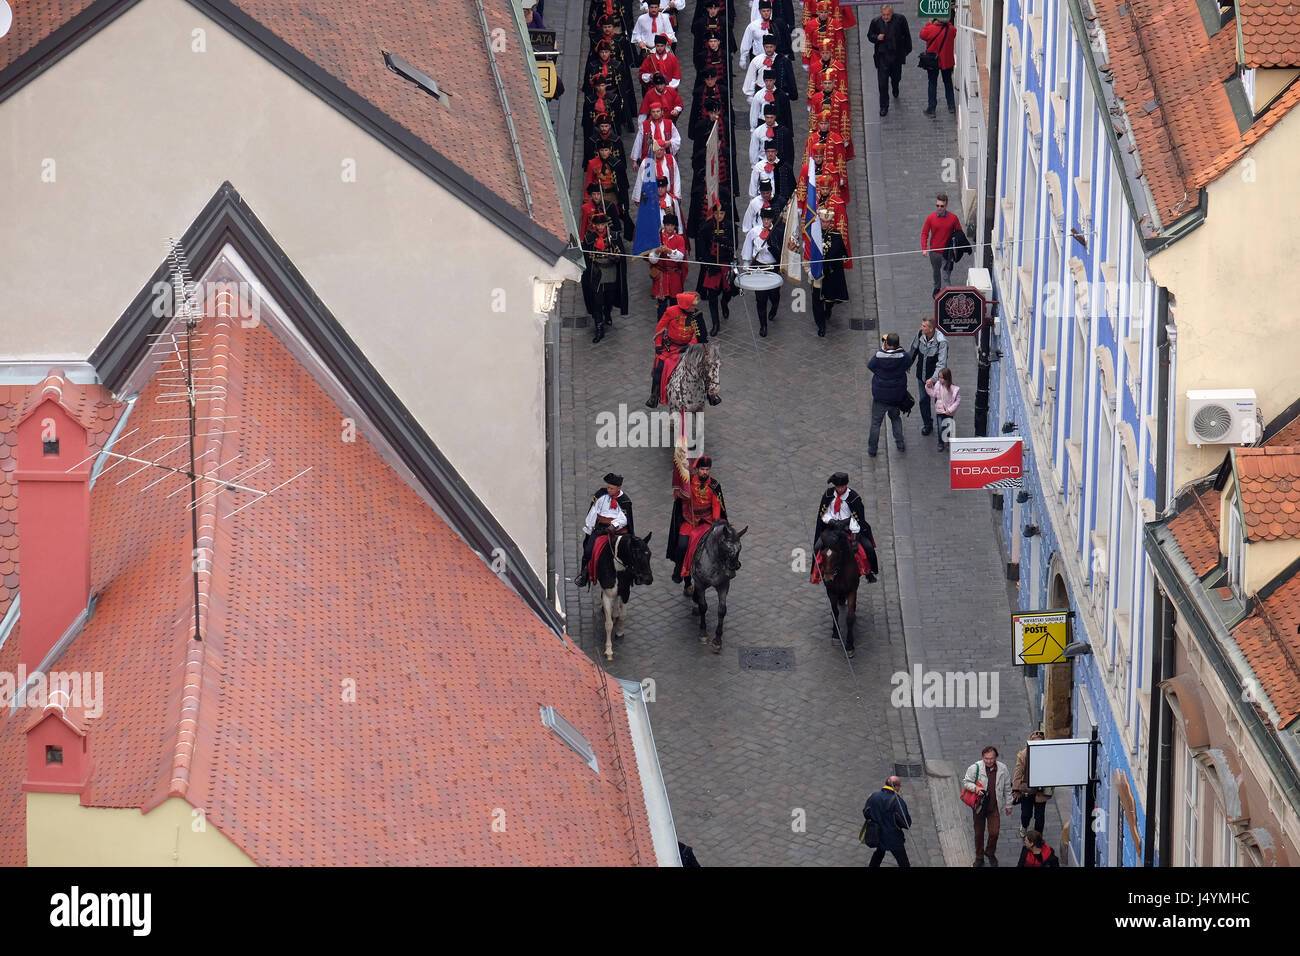 On the occasion of 'World Cravat Day', Honorary Cravat Regiment made a great spectacle changing of the Guard - Stock Image